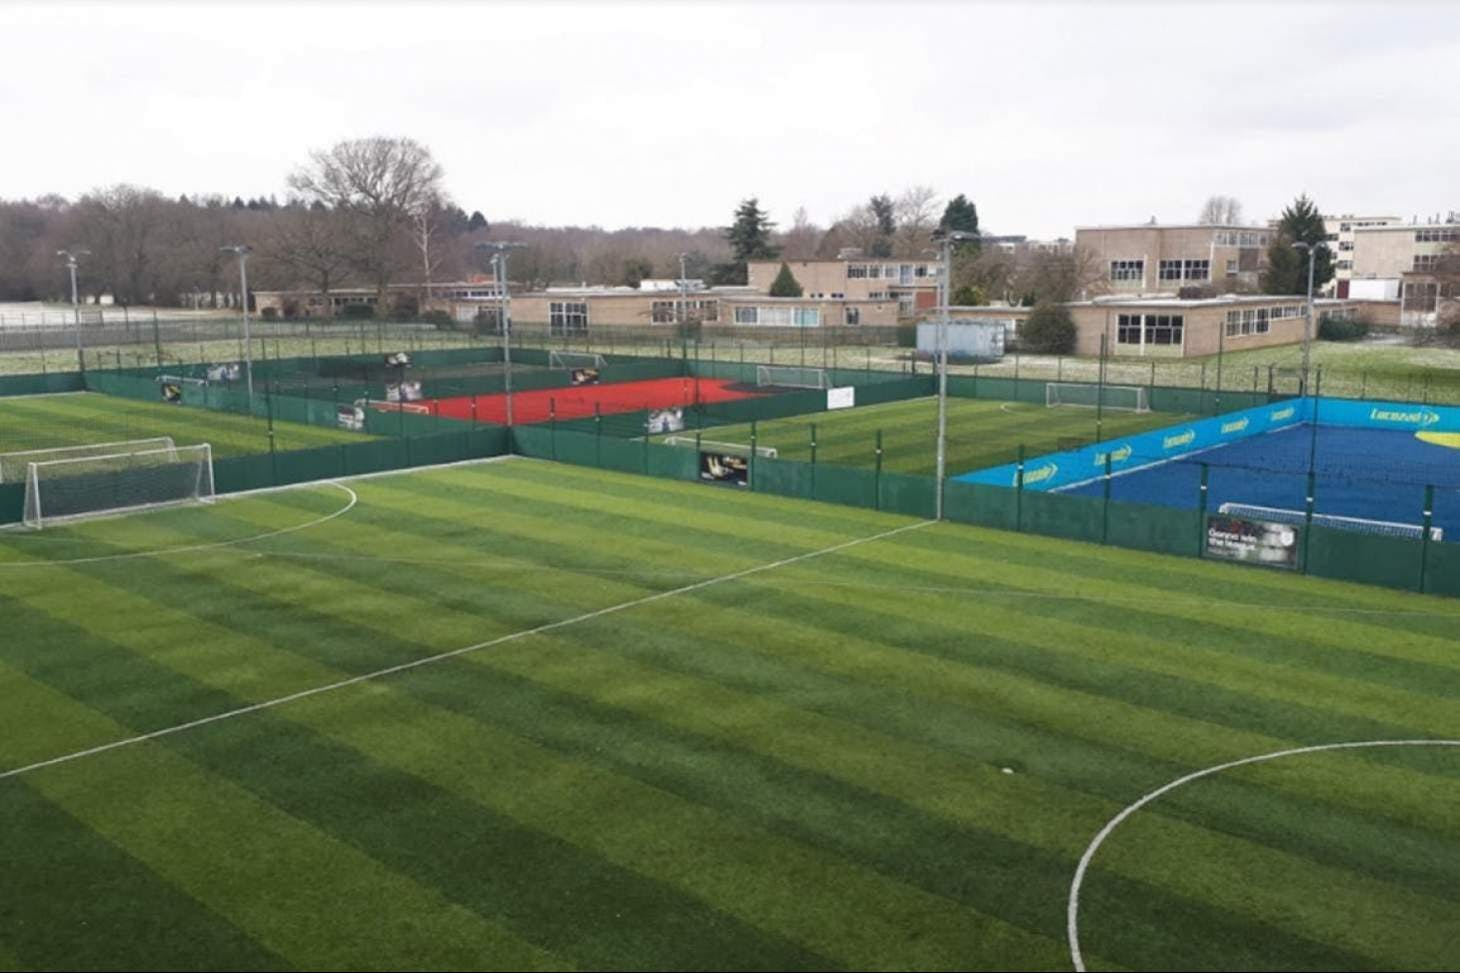 Powerleague Coventry 3 a side | 3G Astroturf football pitch